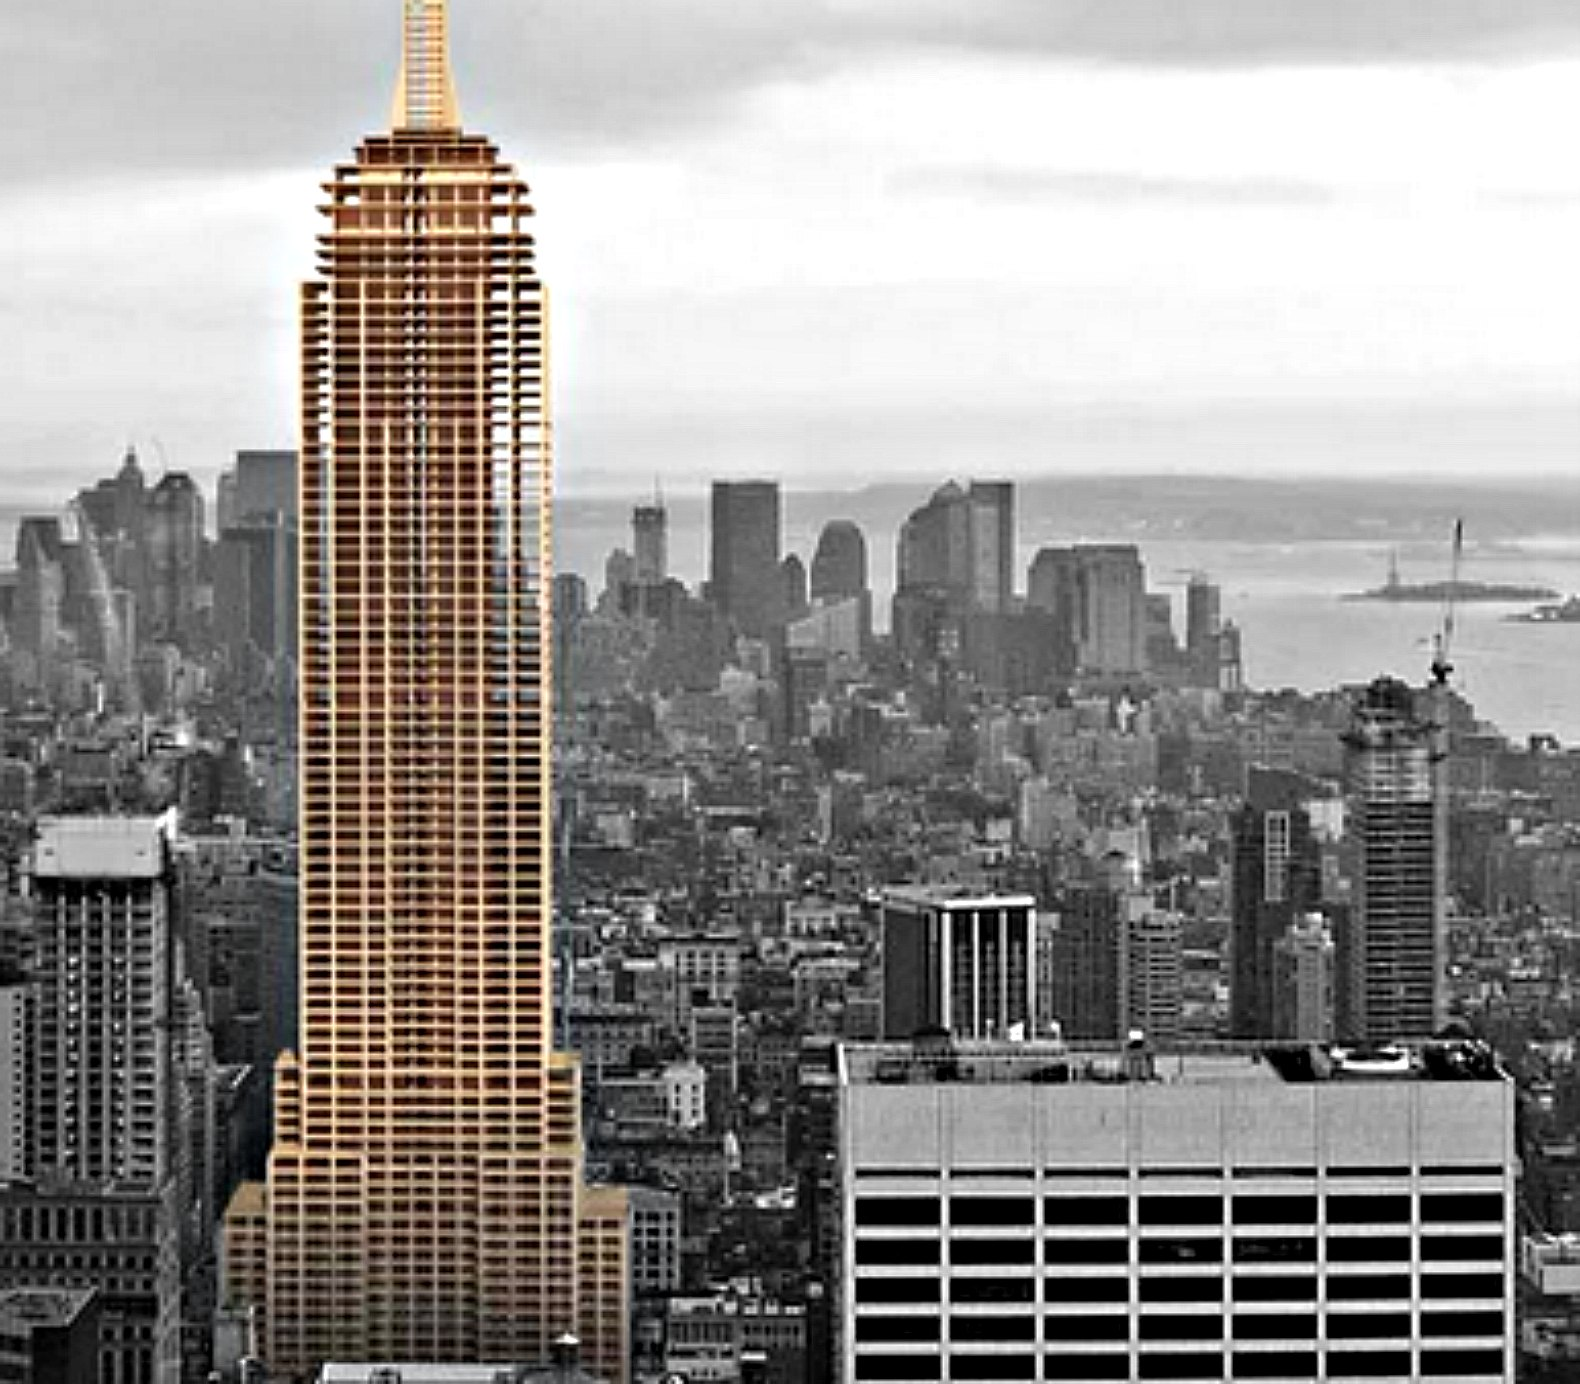 Architect Builds Empire State Building Replica Out Of Wood | Inhabitat    Green Design, Innovation, Architecture, Green Building